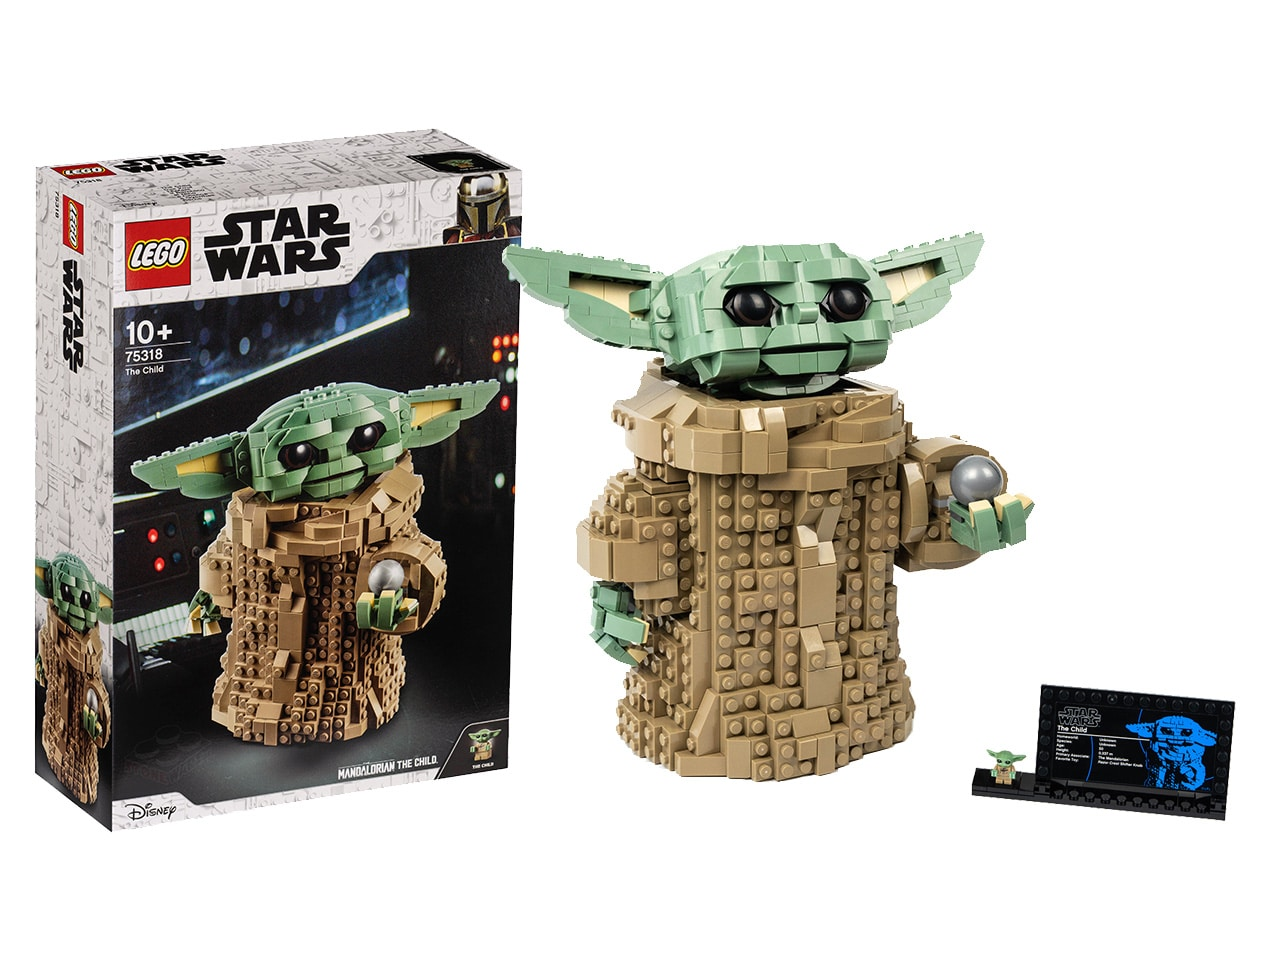 LEGO Star Wars 75318 The Child Review